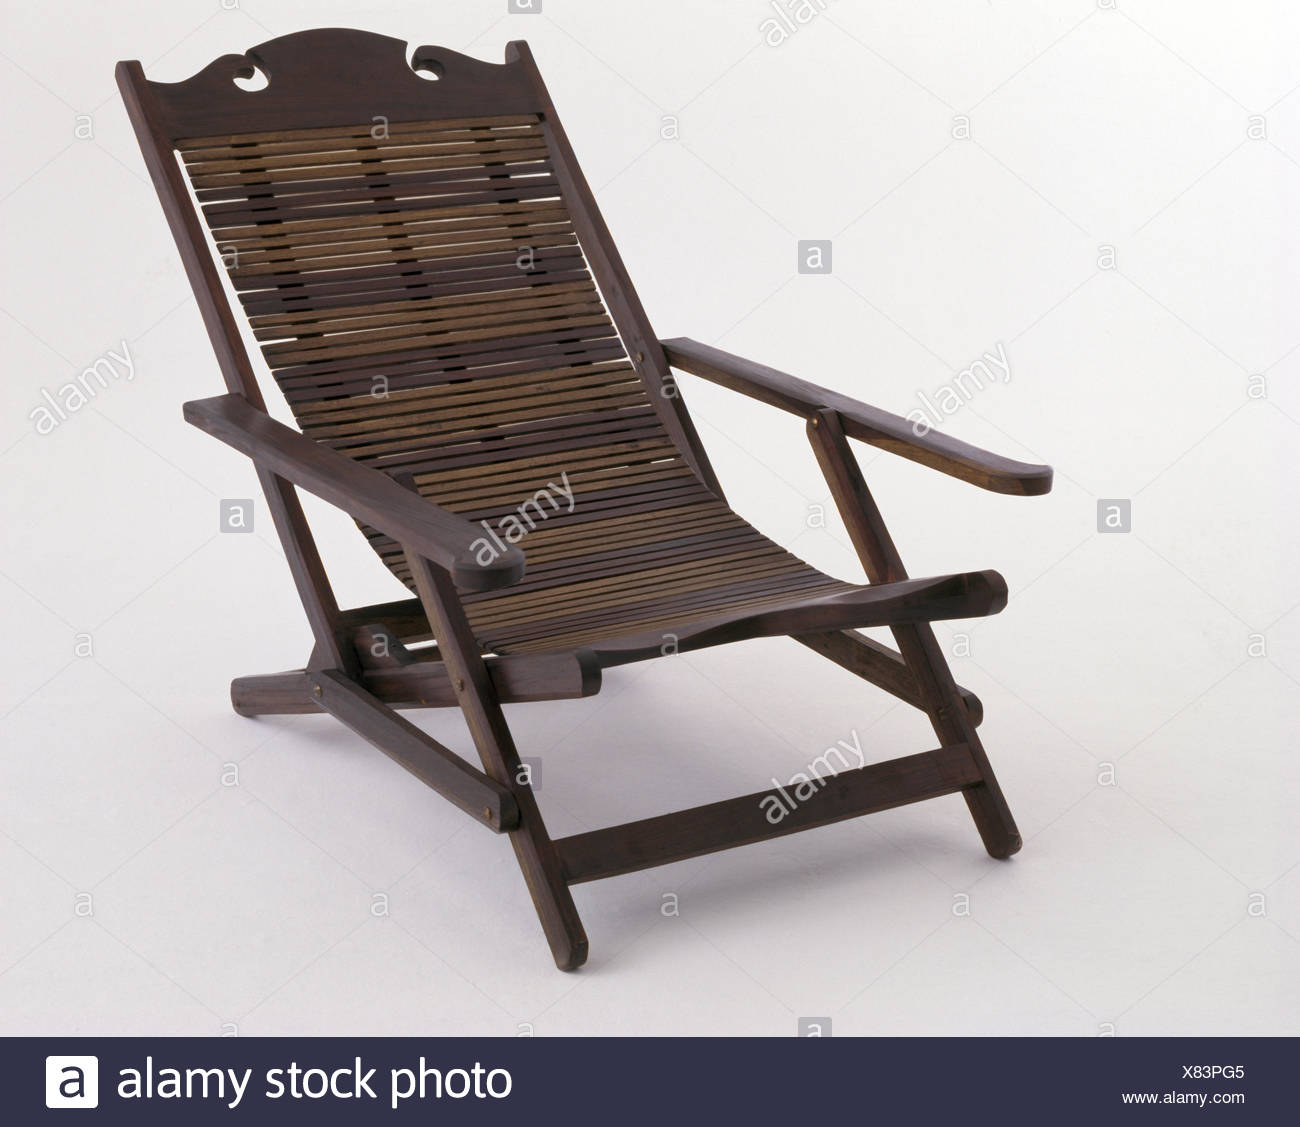 Close Up Of Slatted Wooden Planteru0027s Chair   Stock Image